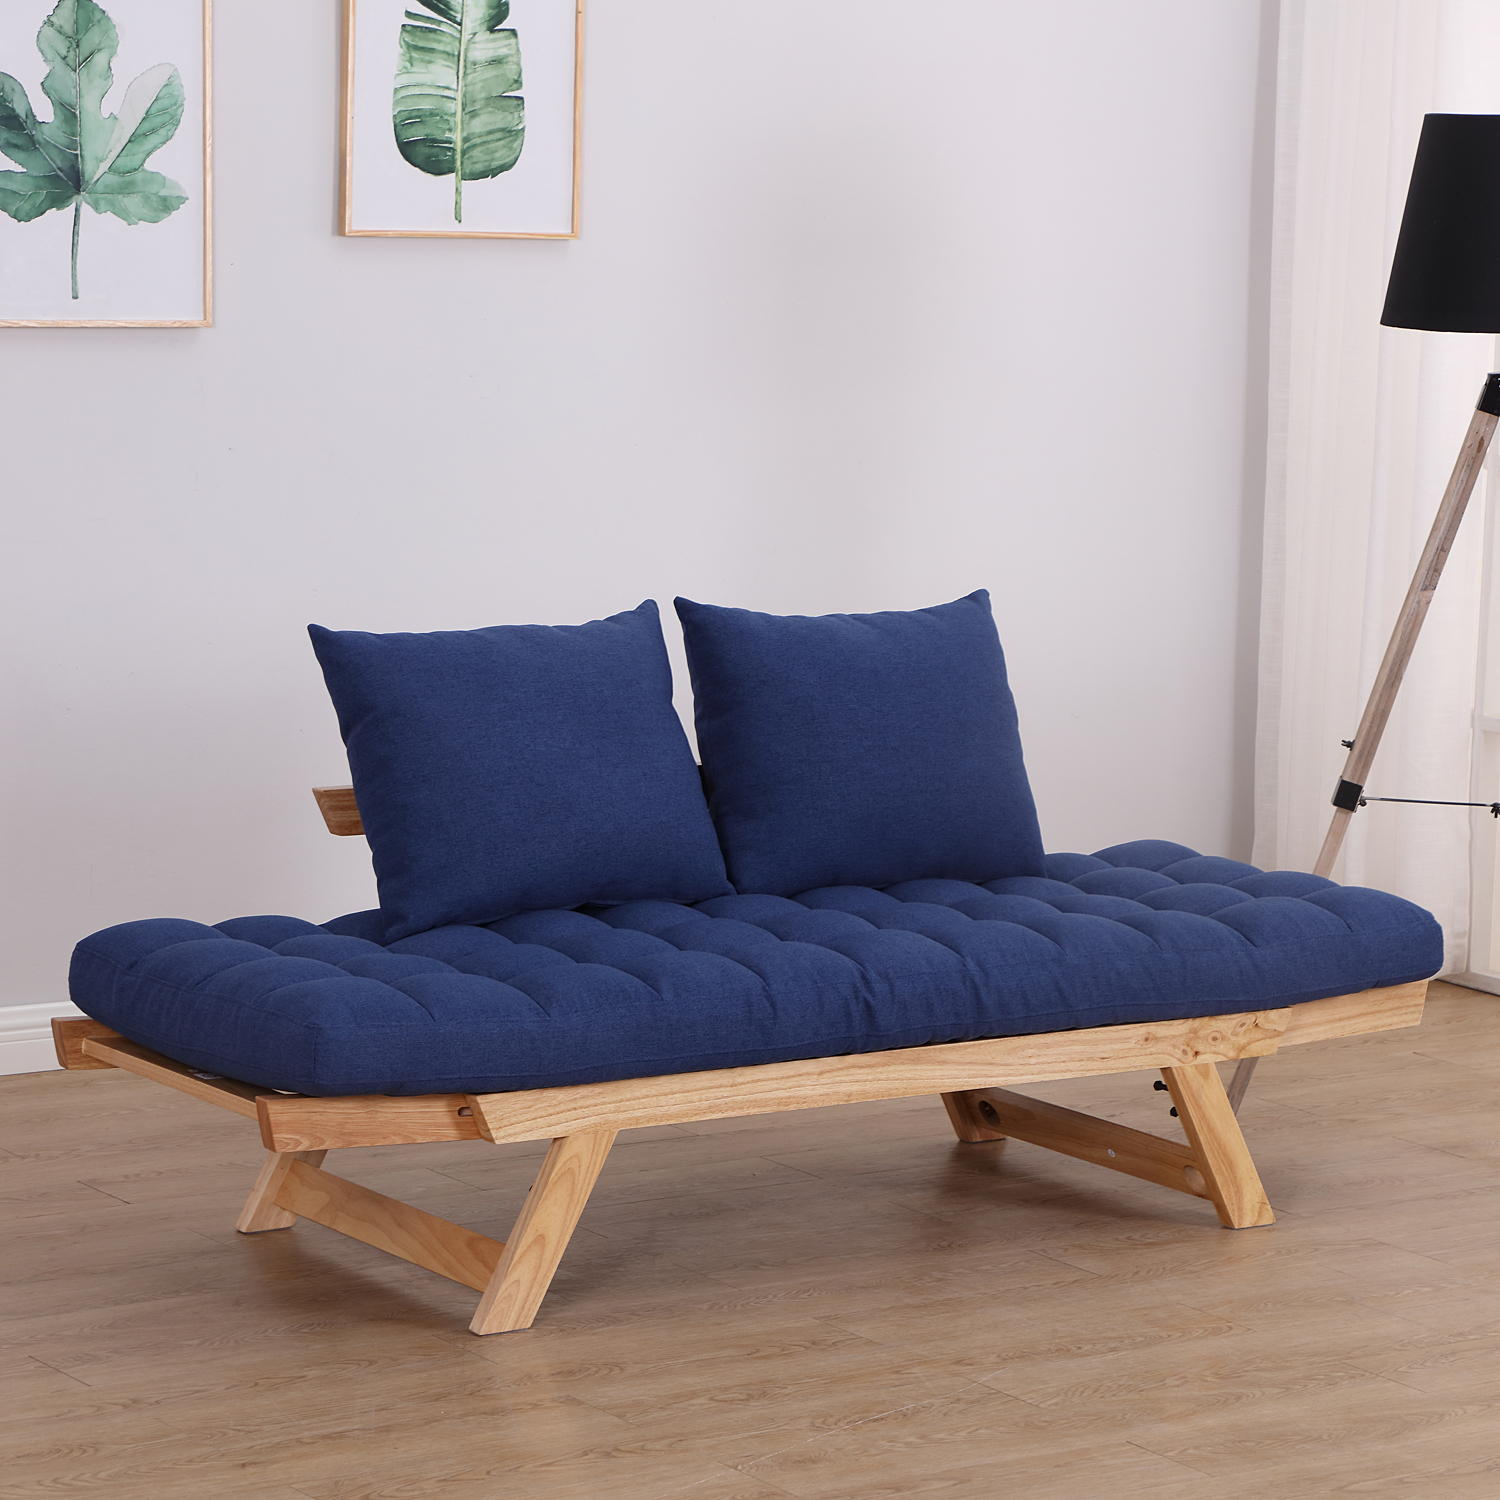 Convertible-Sofa-Bed-Sleeper-Couch-Chaise-Lounge-Chair-Adjustable-Padded-Pillow thumbnail 51